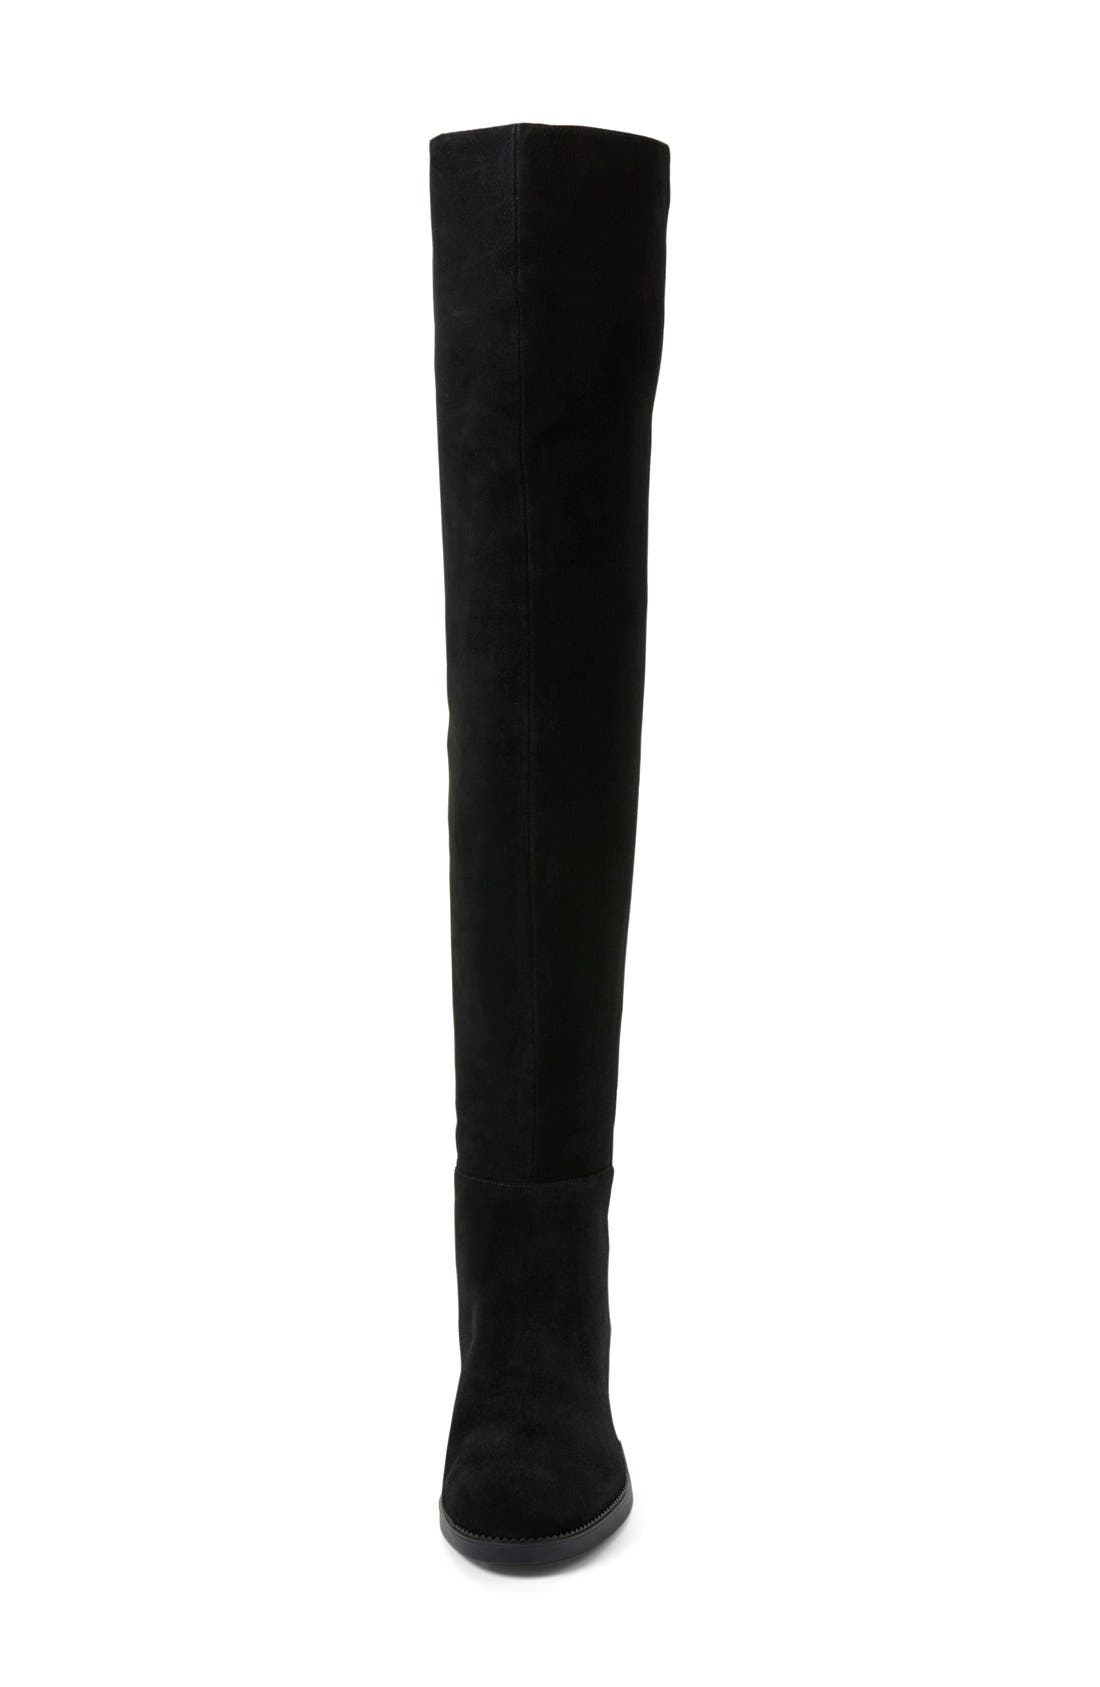 TORY BURCH,                             'Caitlin' Over the Knee Boot,                             Alternate thumbnail 4, color,                             001